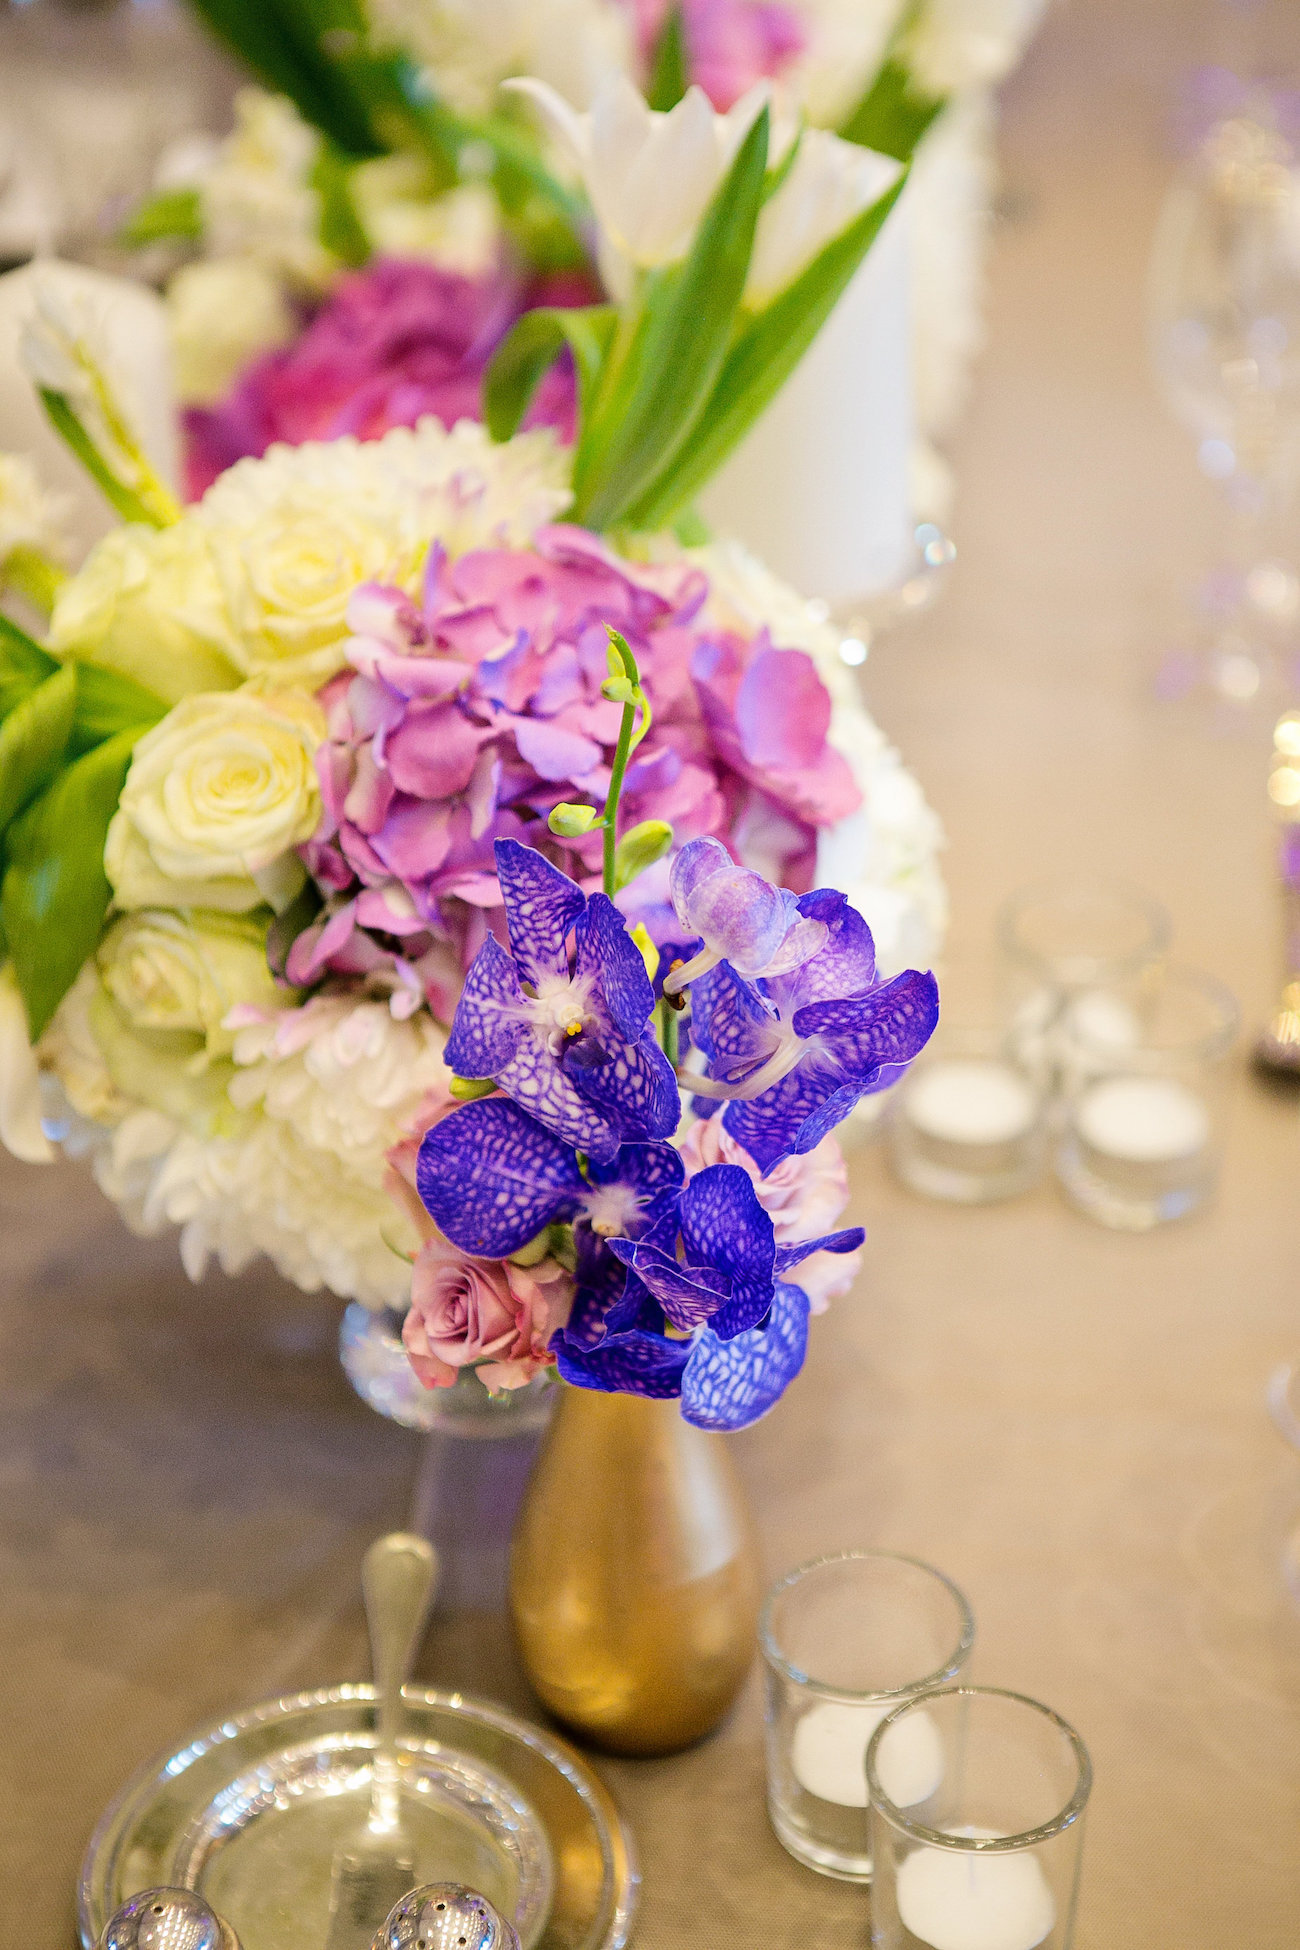 Purple Floral Centerpeice | Credit: Tyme Photography & Wedding Concepts